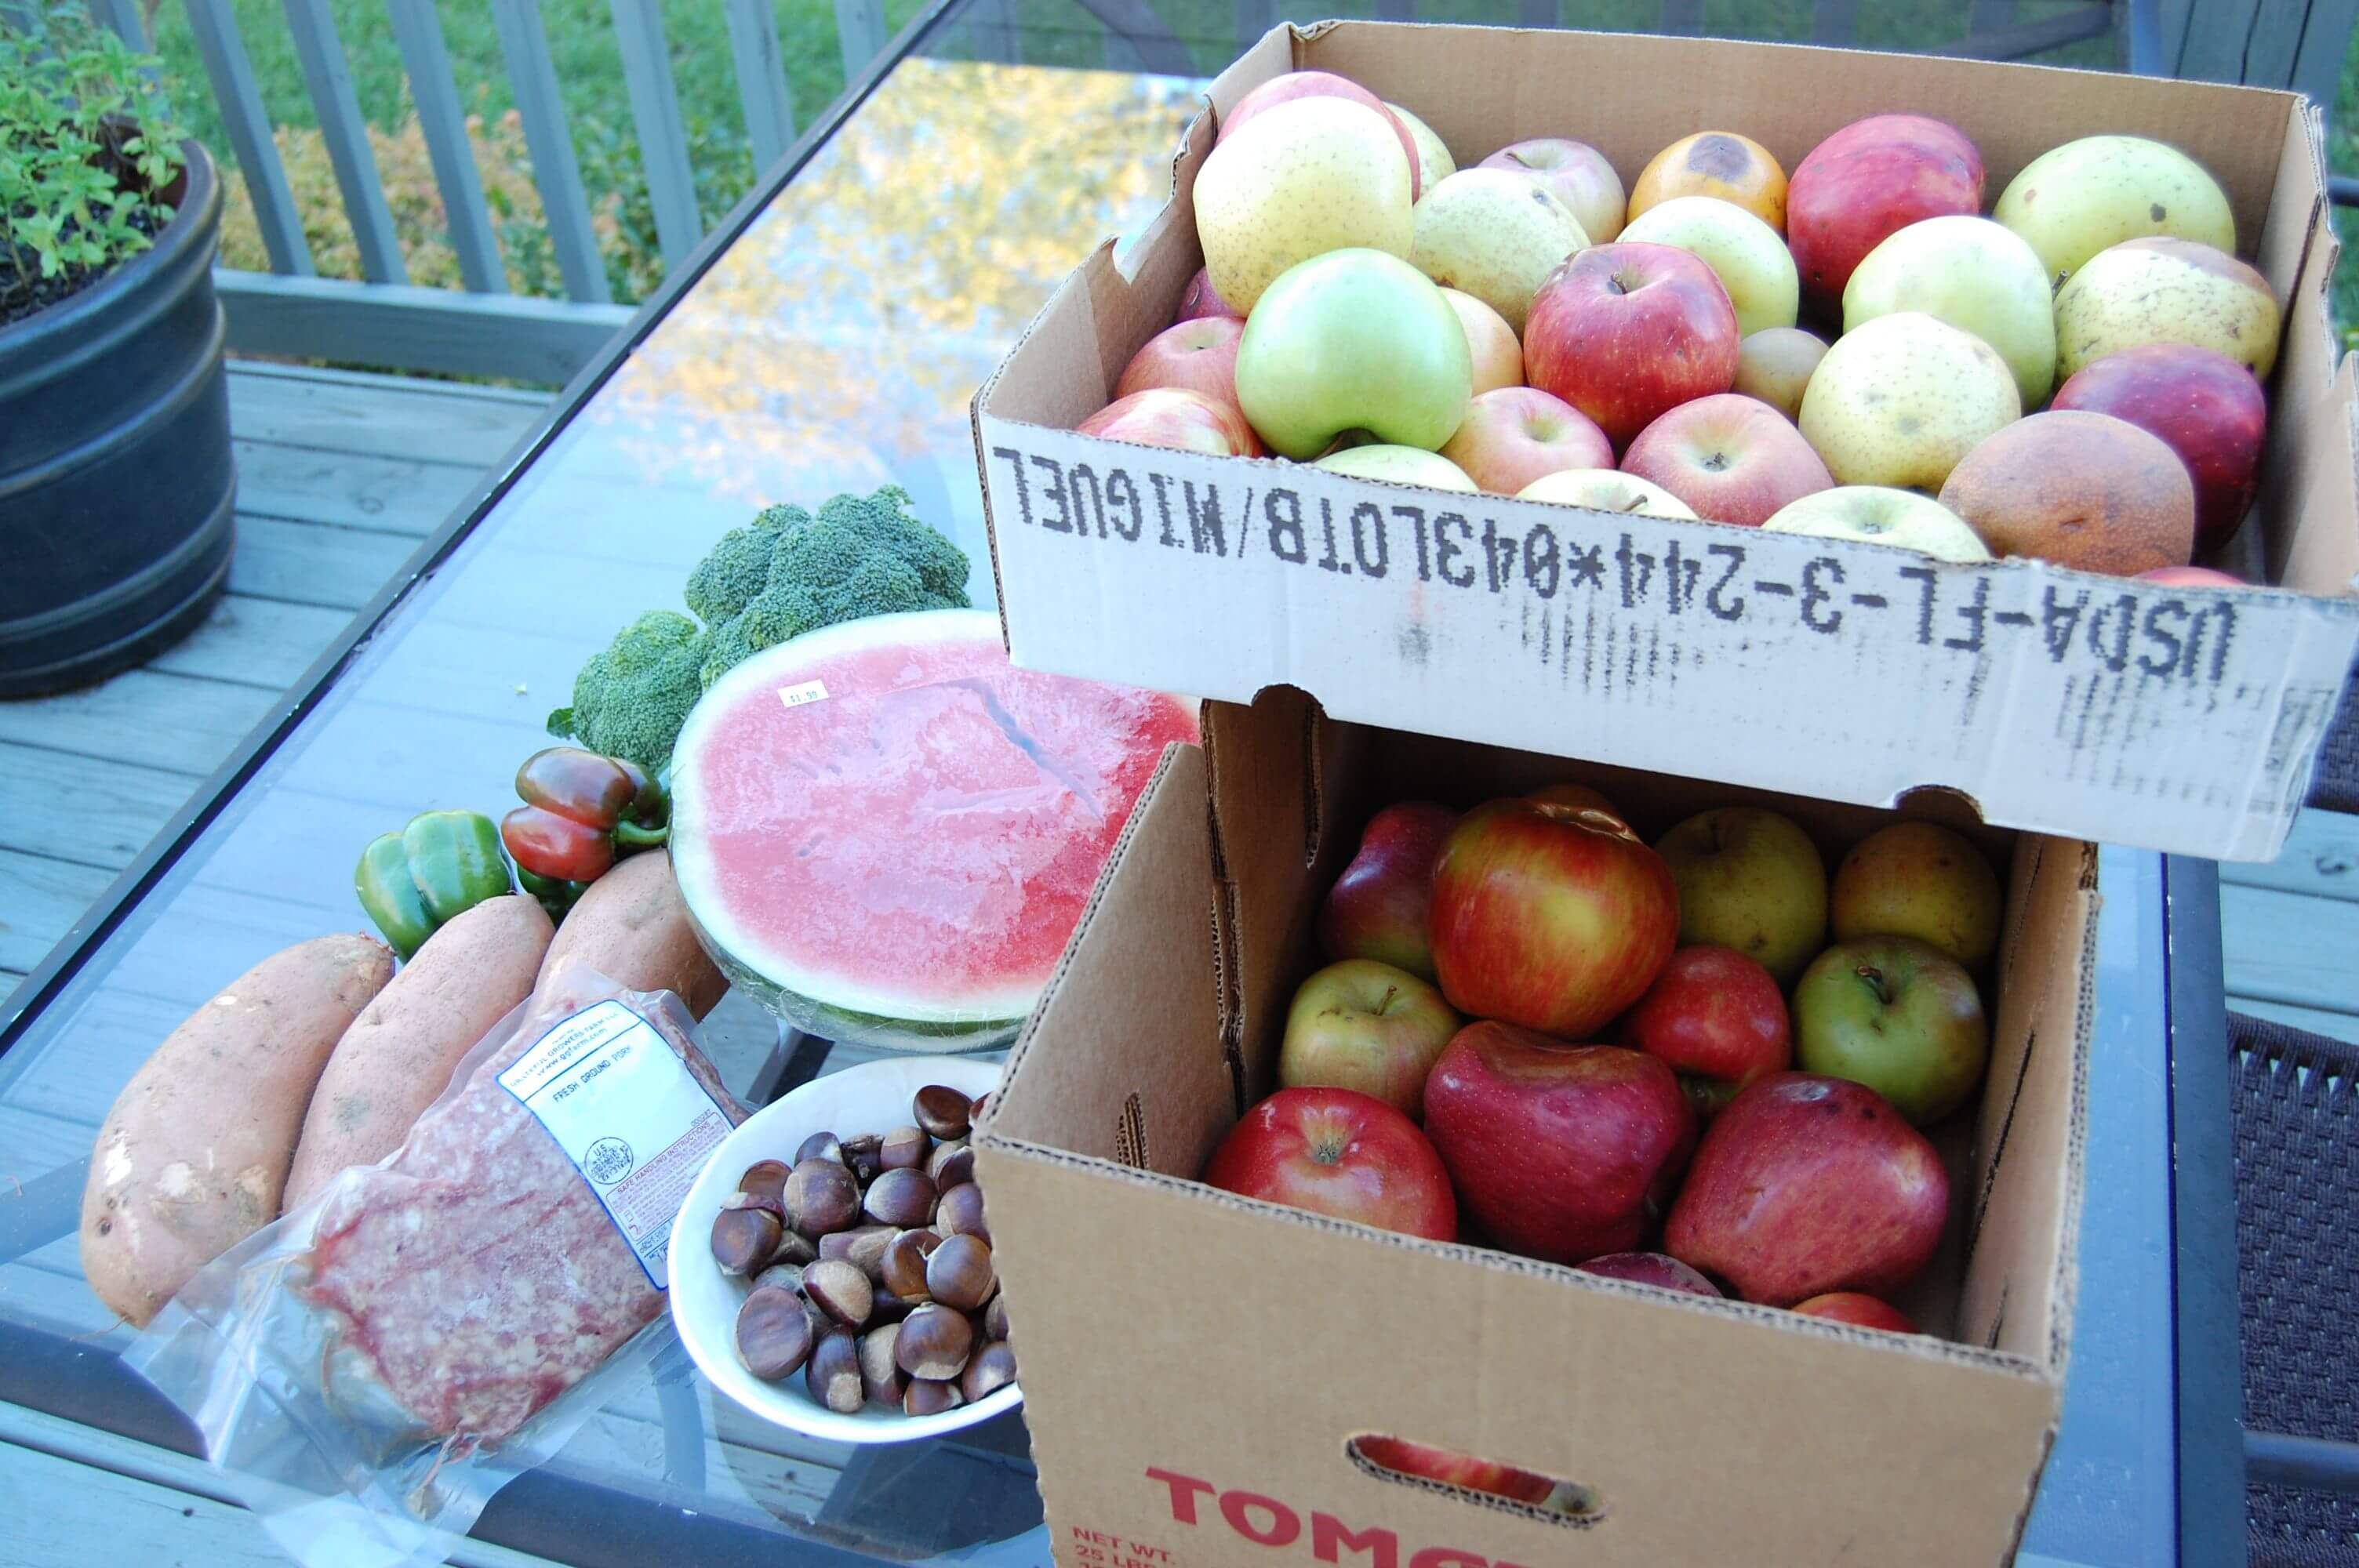 Boxes of apples, watermelon, sweet potatoes, broccoli, meat, and some nuts from the Hillbilly Produce in North Carolina.